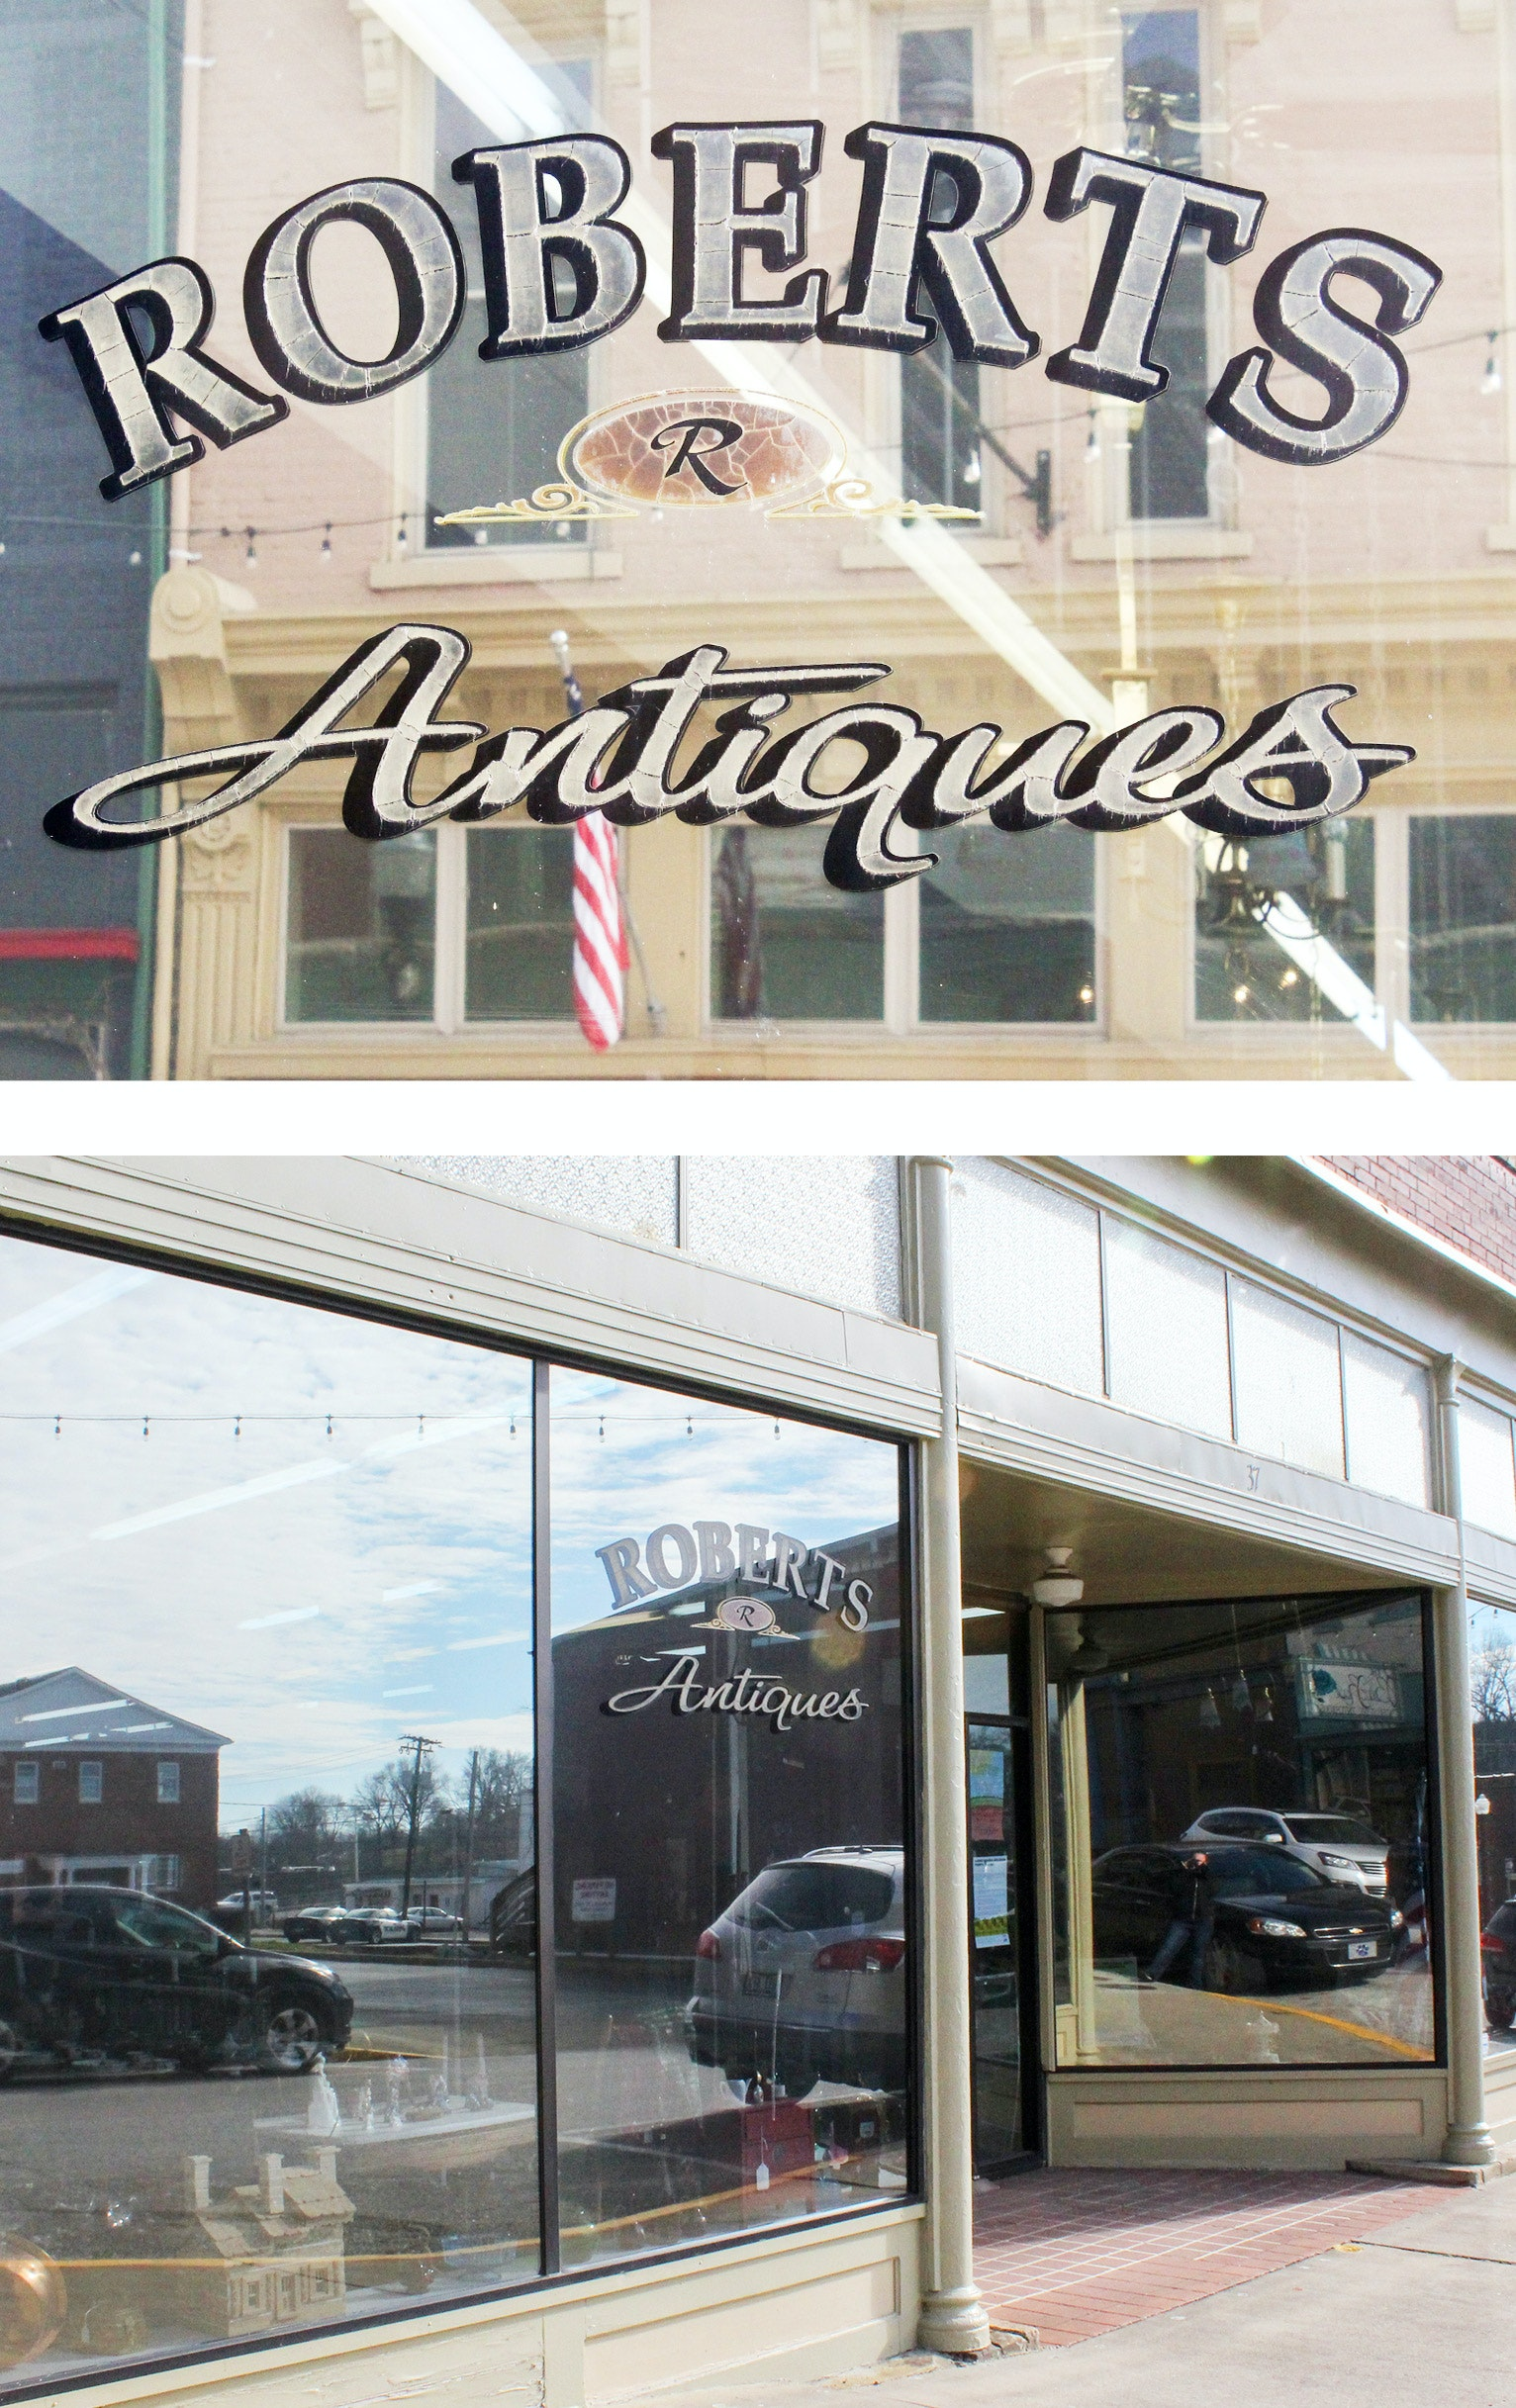 Roberts' Antiques, Lexington, KY